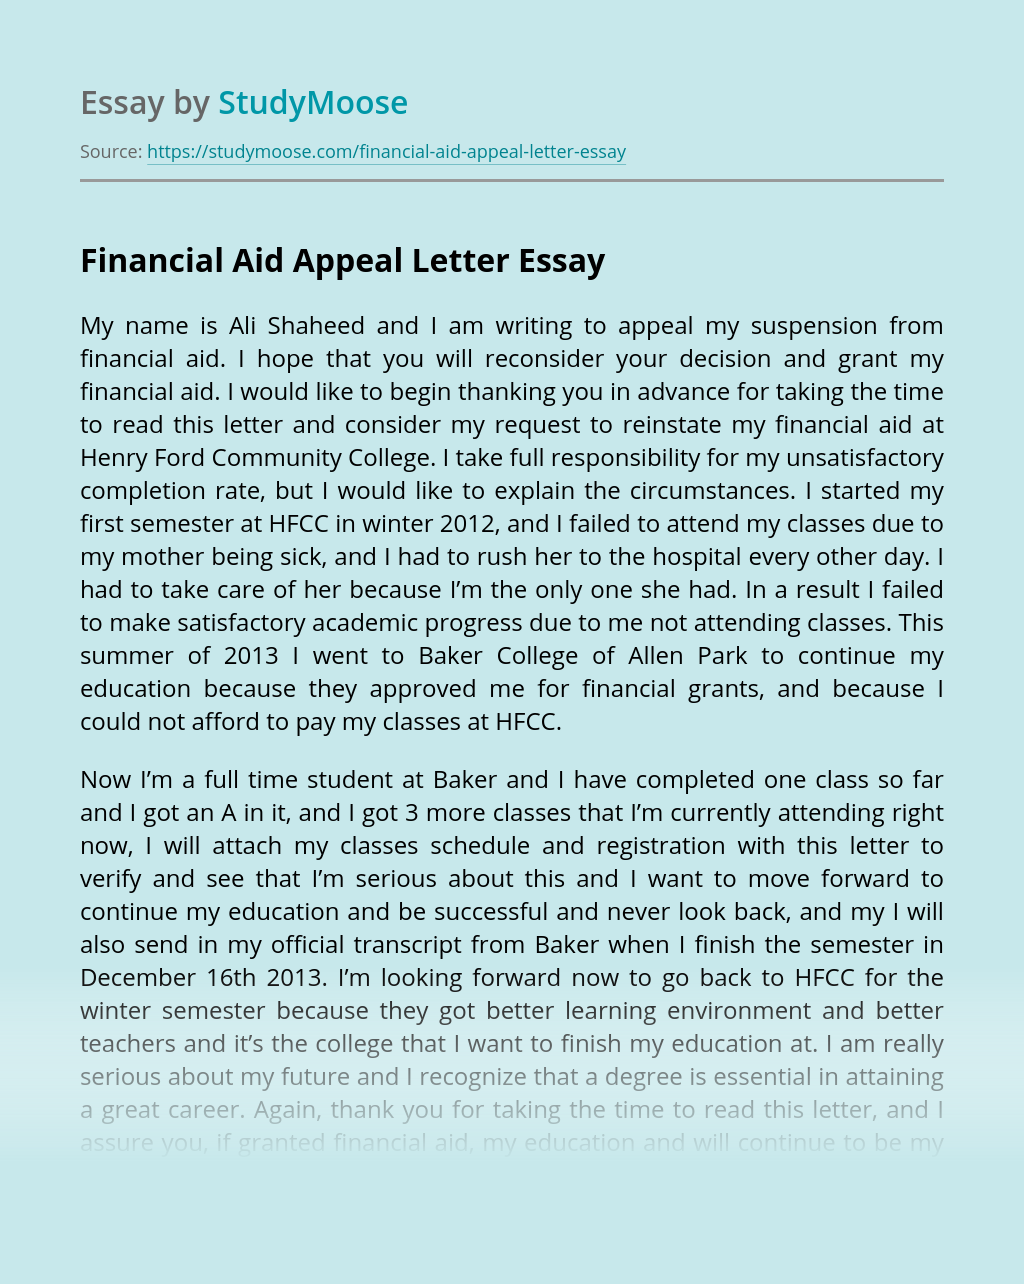 Appeal Letter For Financial Aid from studymoose.com